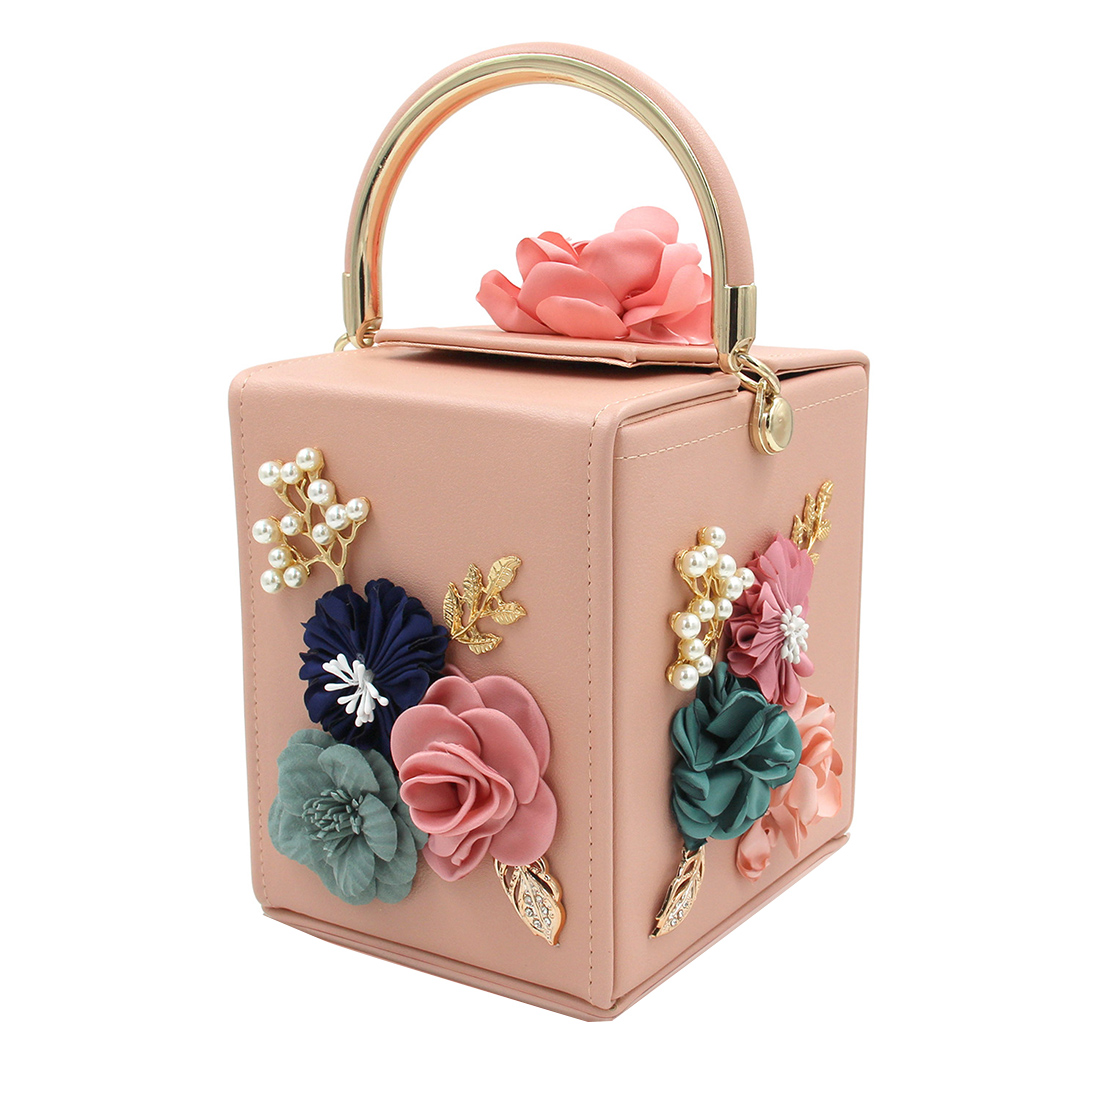 Women Evening Bag Design Ladies Flower Handbag For Wedding Female Clutch Fashion Squared Box Party Shoulder Messenger Bags Totes in Top Handle Bags from Luggage Bags